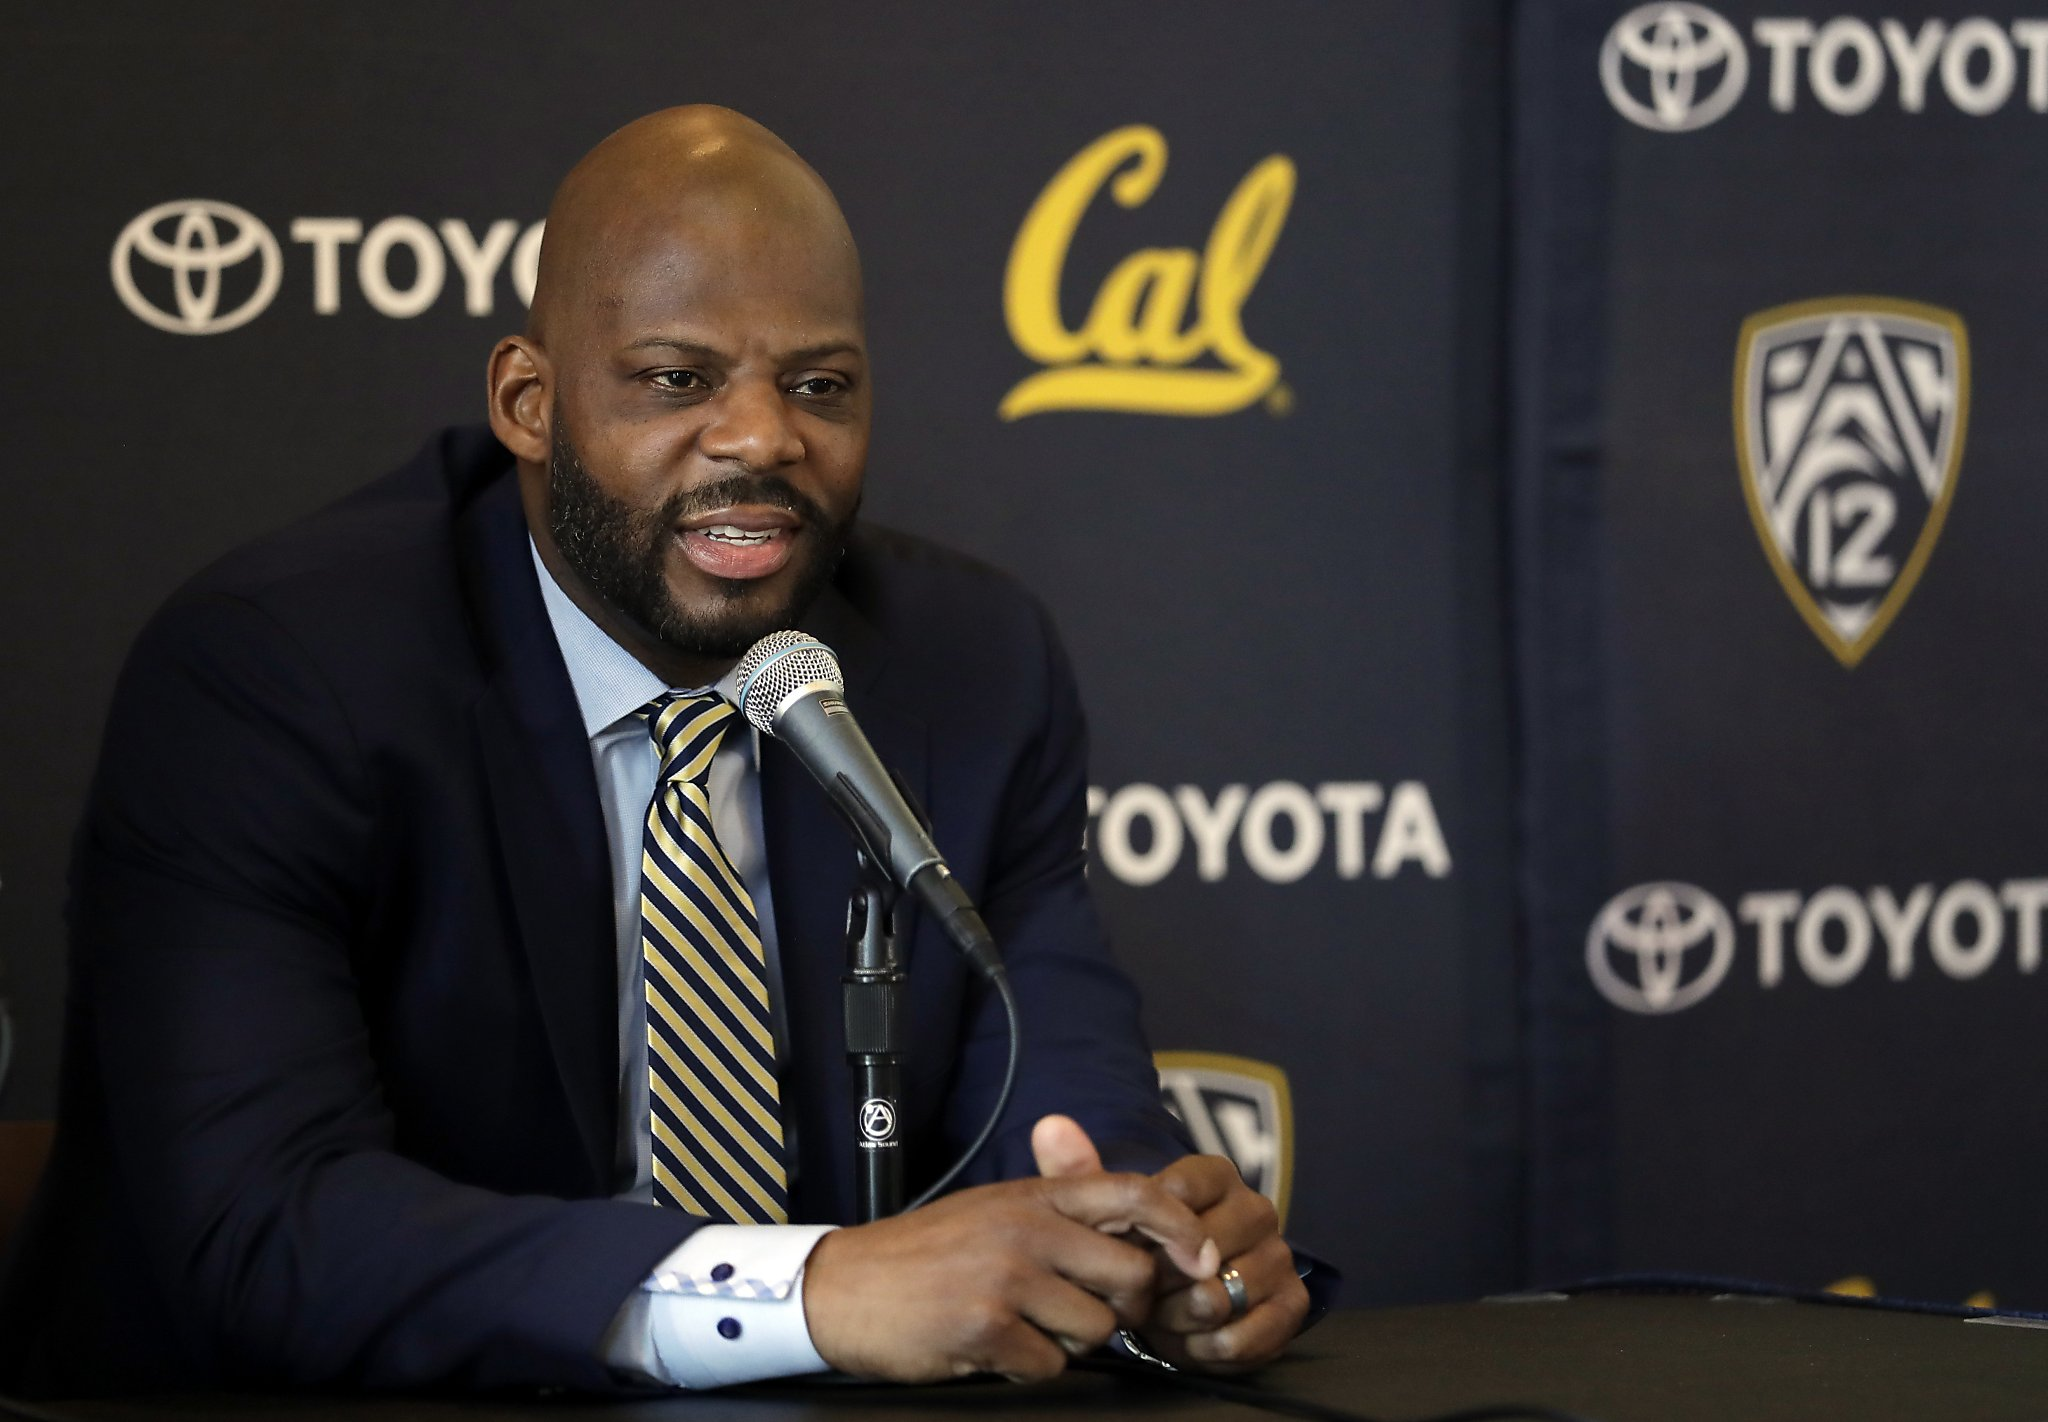 Wyking Jones generating excitement as Cal's head basketball coach